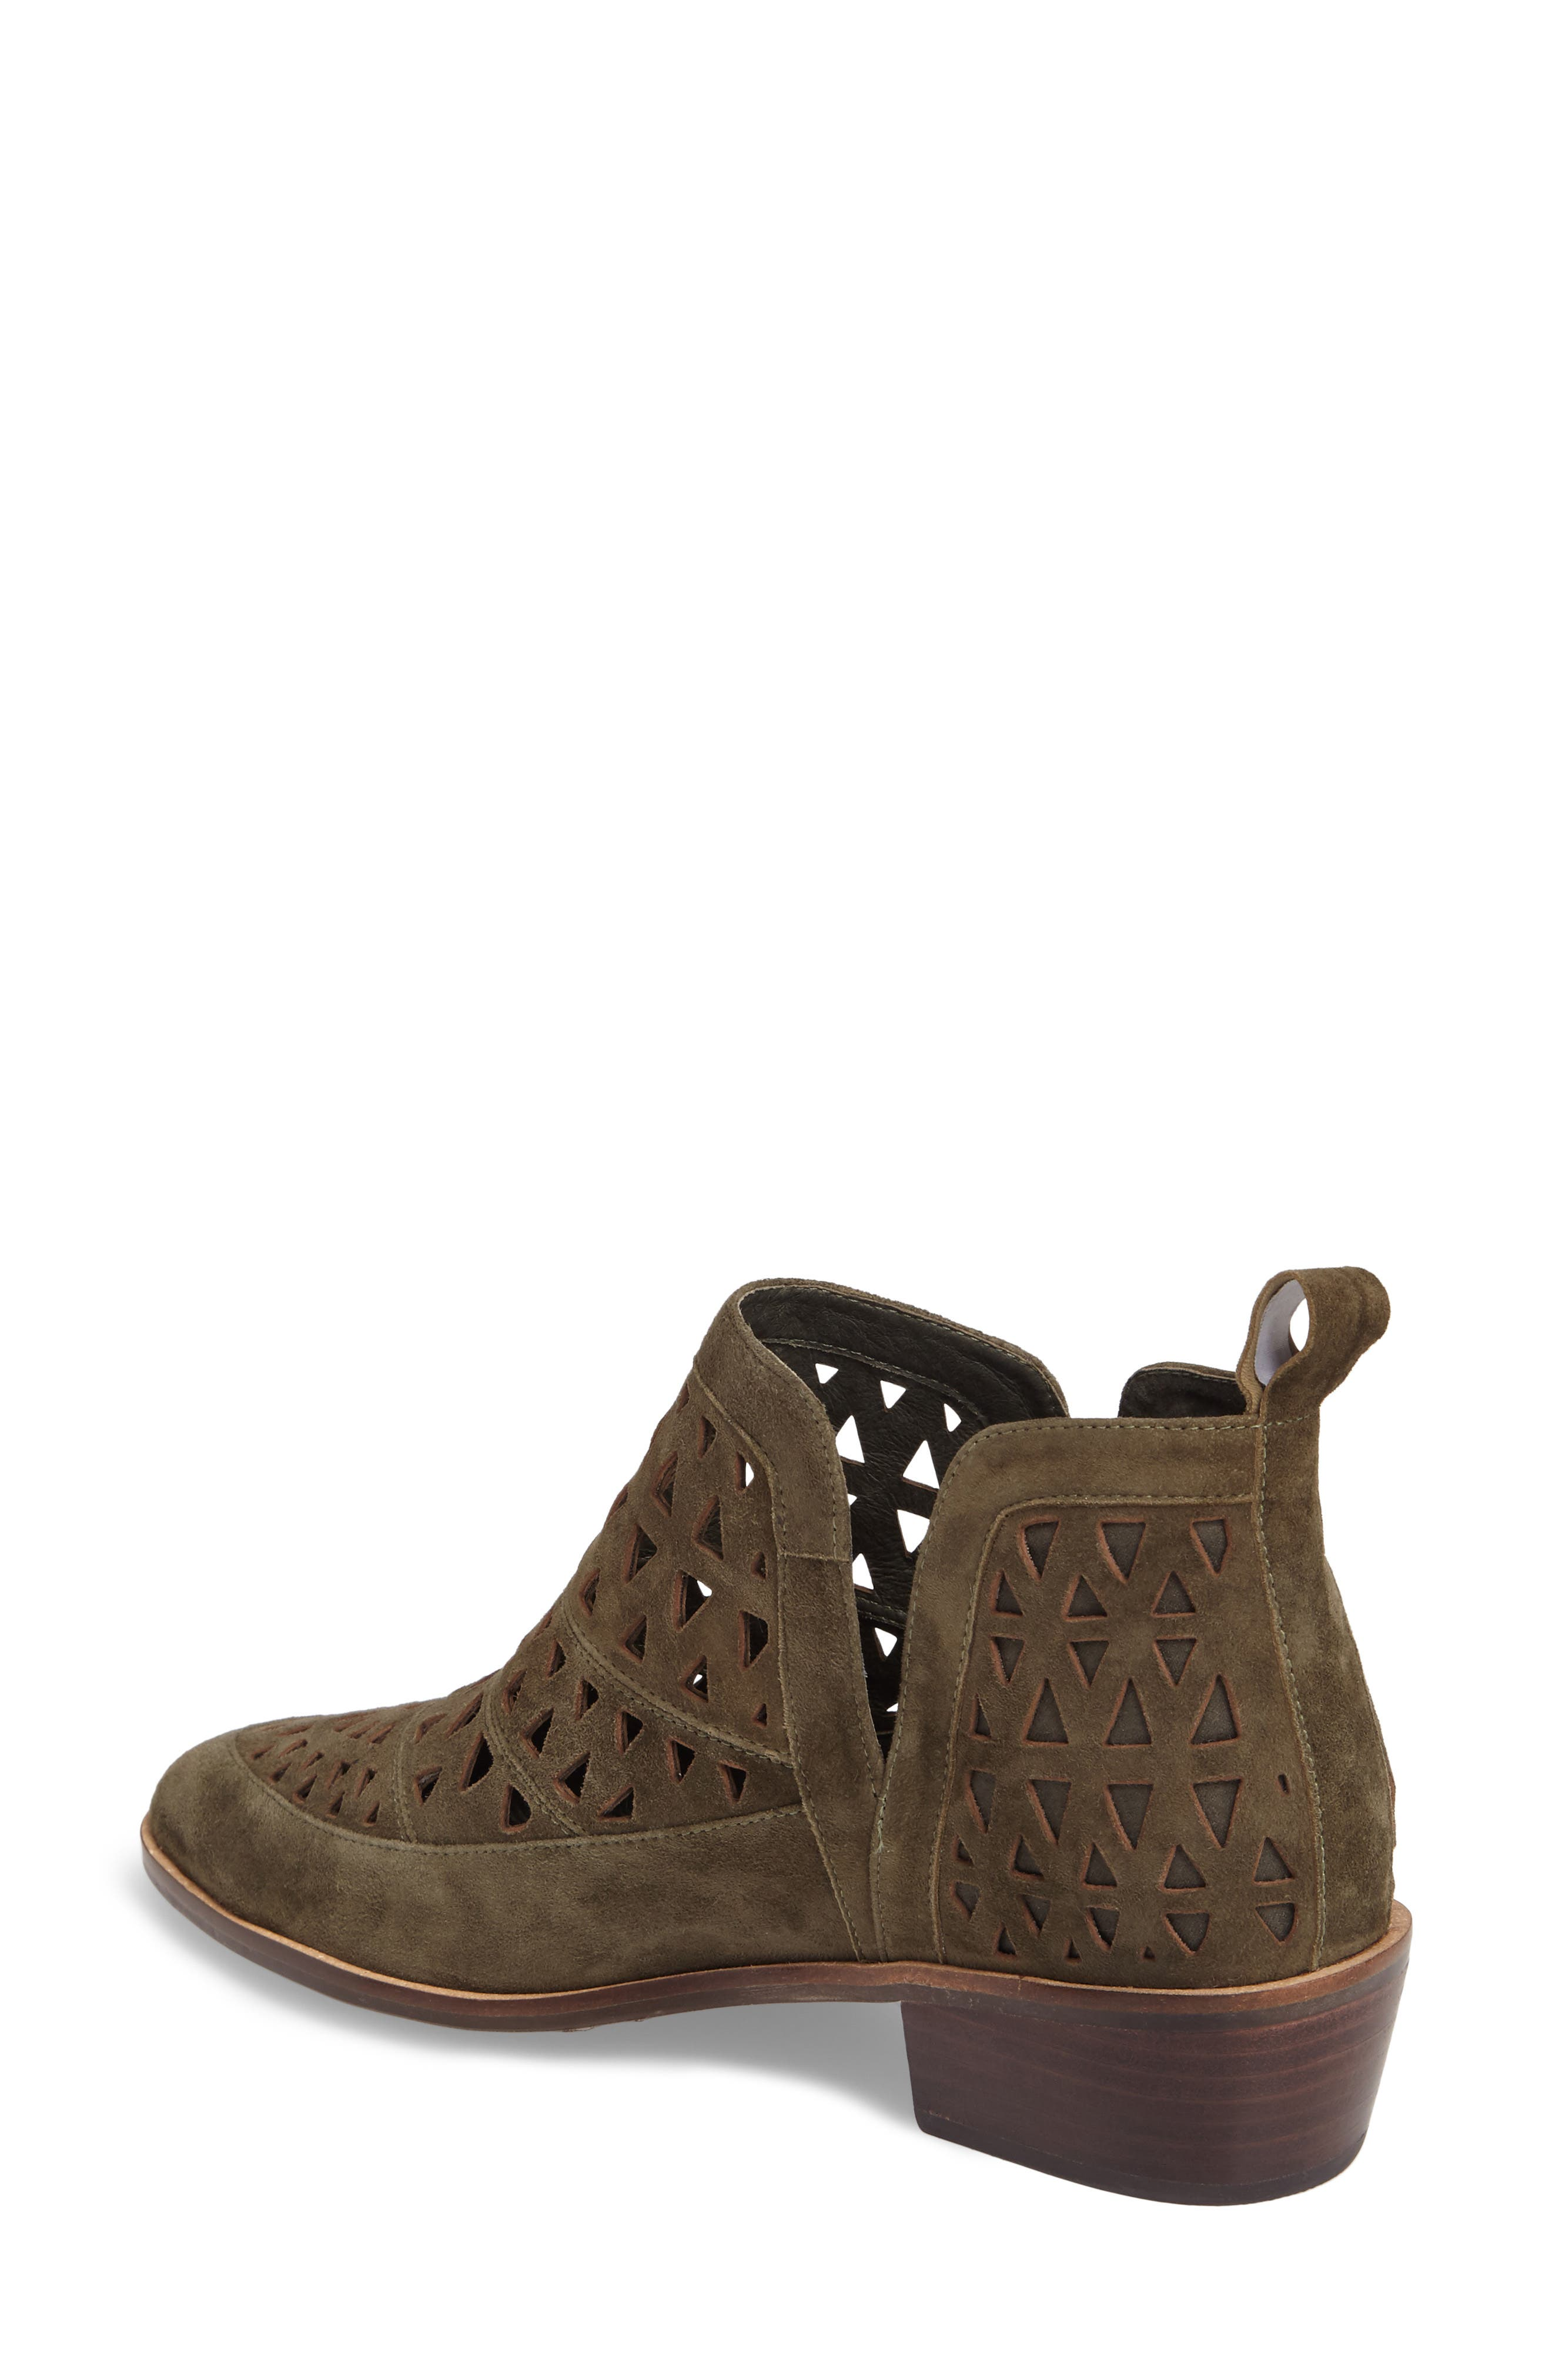 Catherine Cutout Bootie,                             Alternate thumbnail 2, color,                             Olive Suede